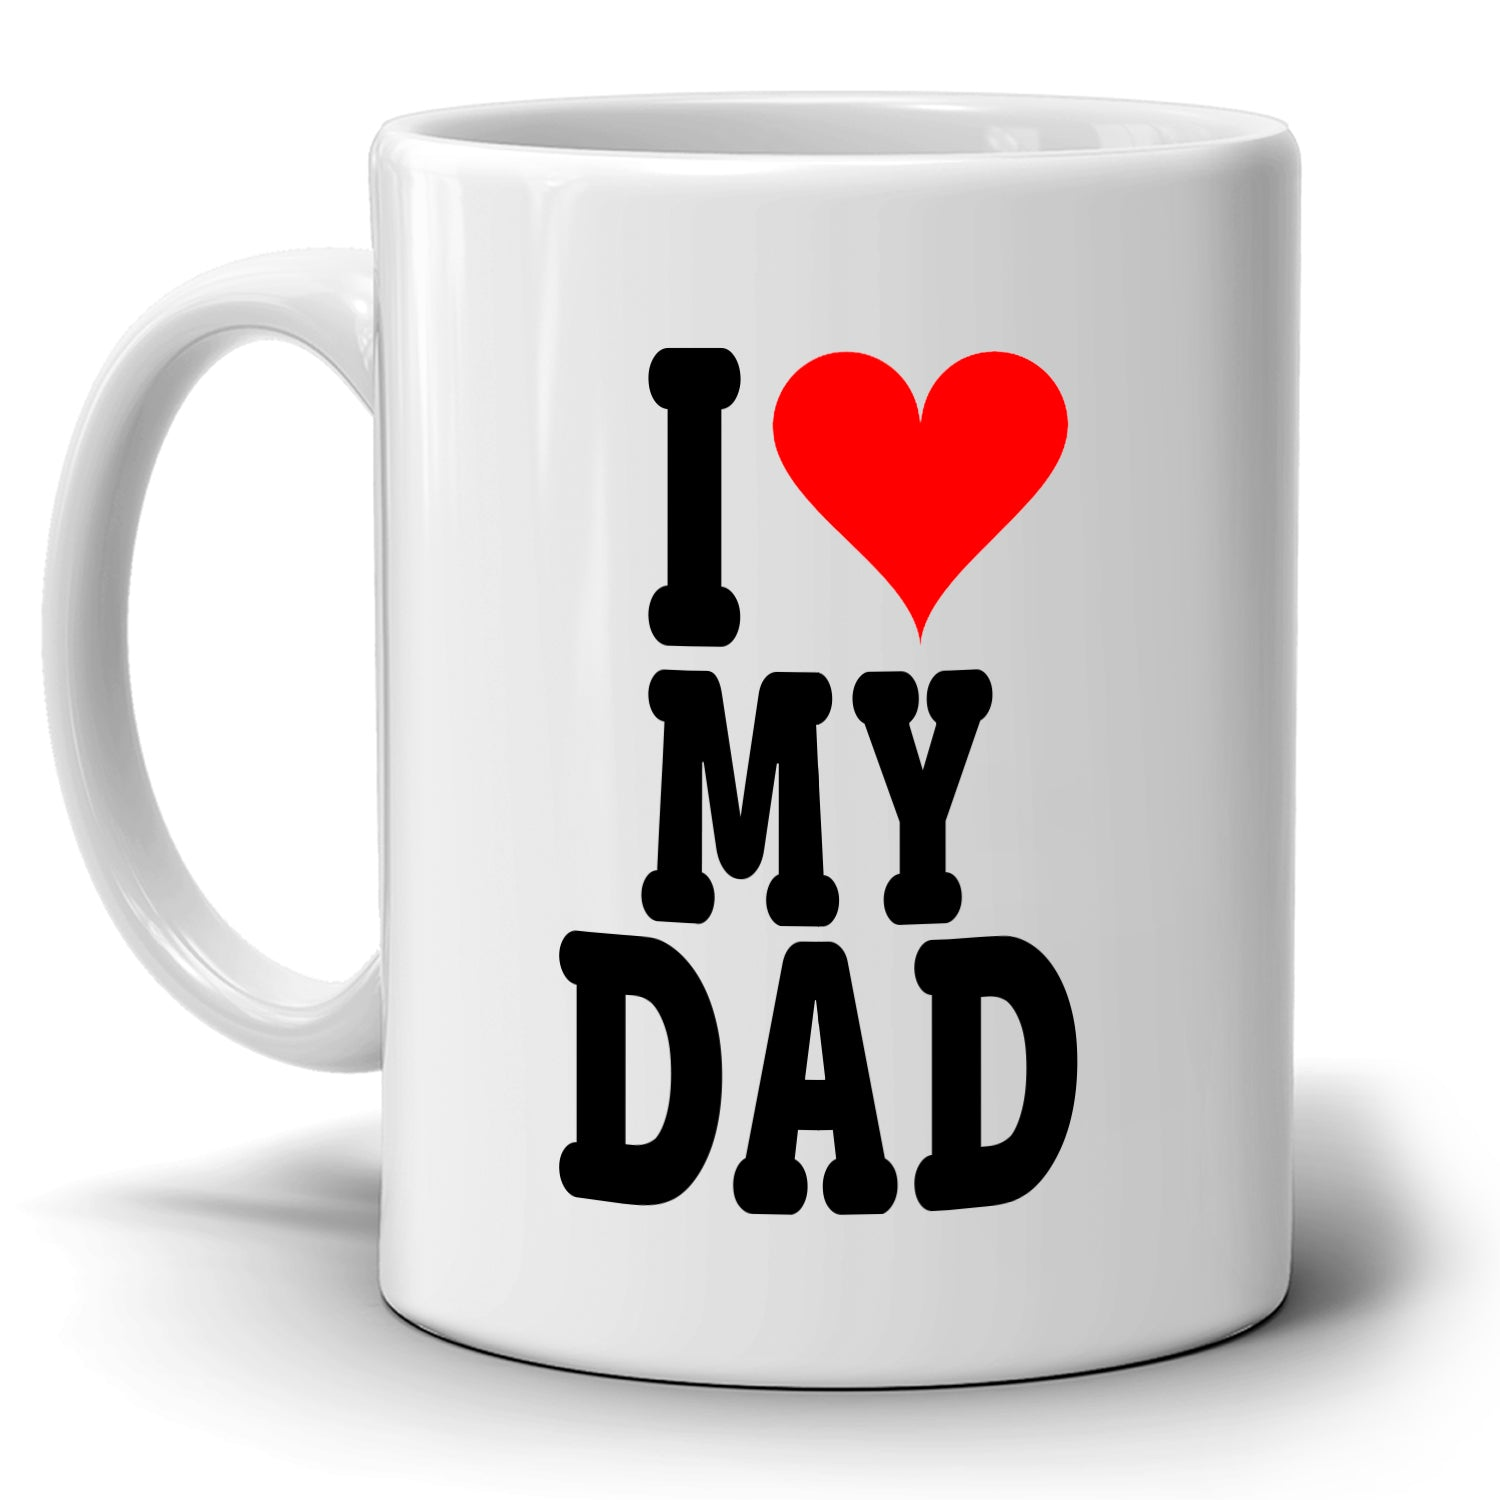 I Love My Dad Cute Christmas Fathers Day And Birthday Gifts For Papa Printed On